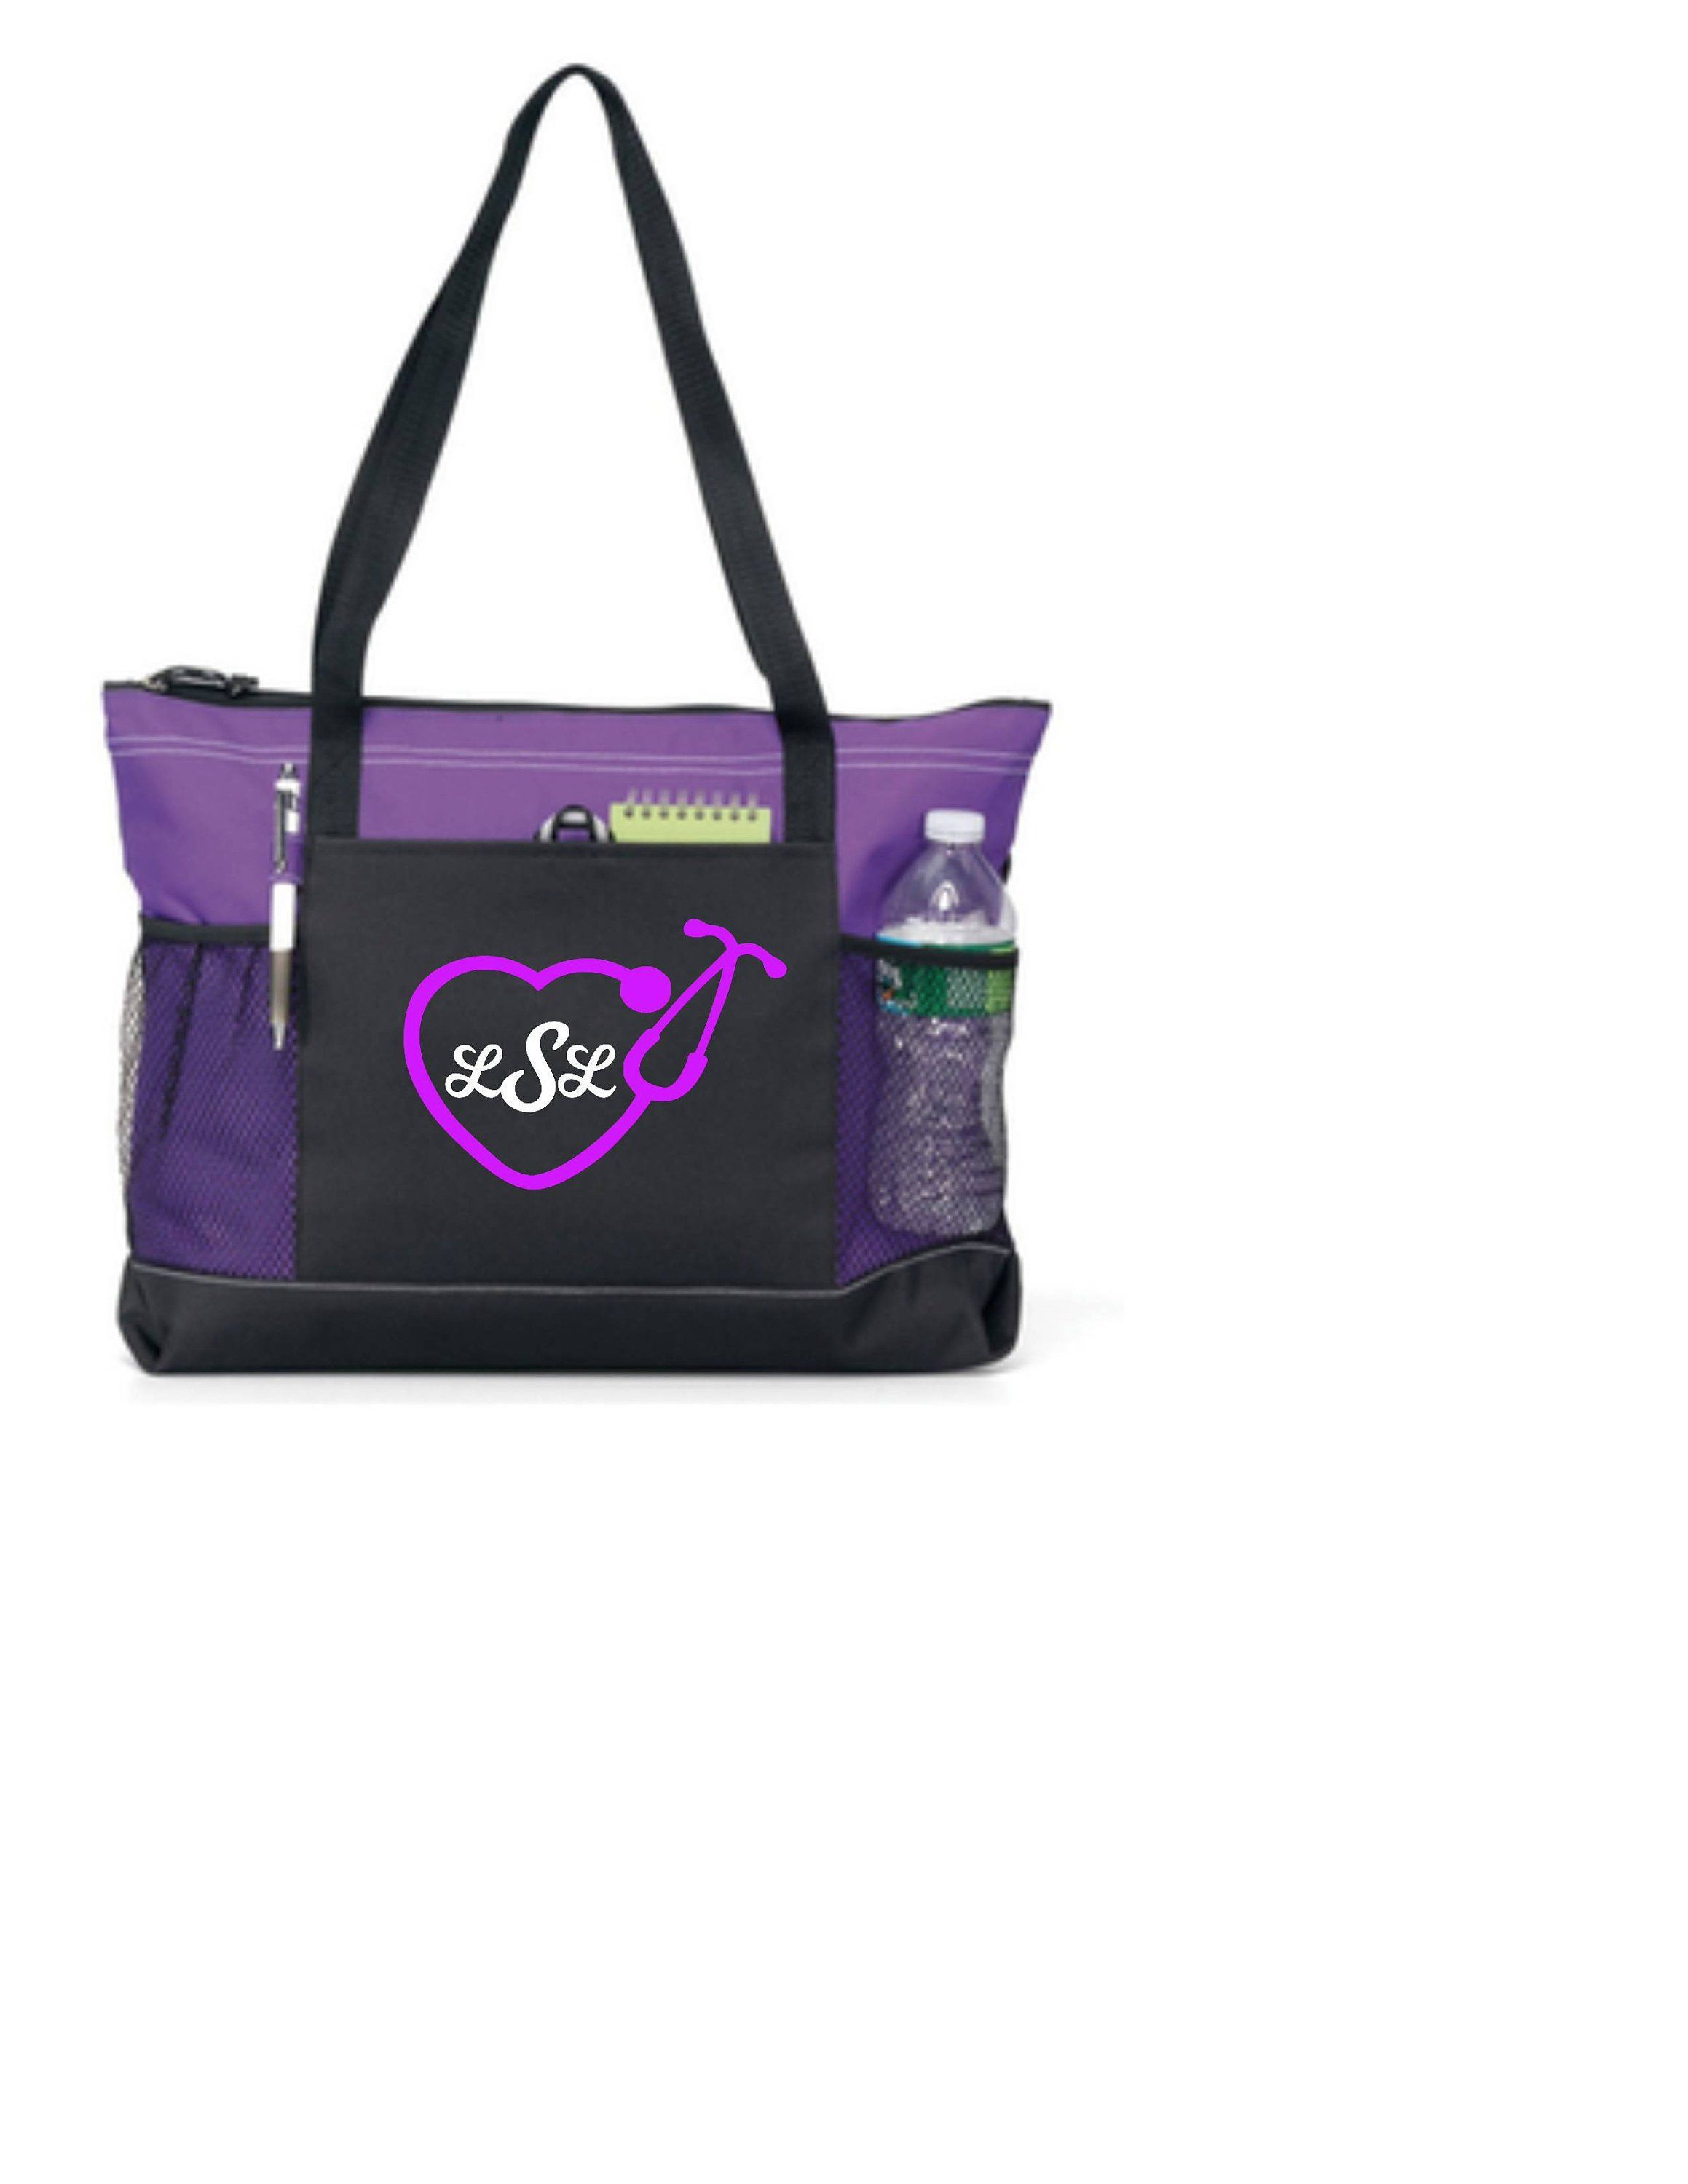 Nurse Bag Nursing Tote Personalized With Any Monogram Or